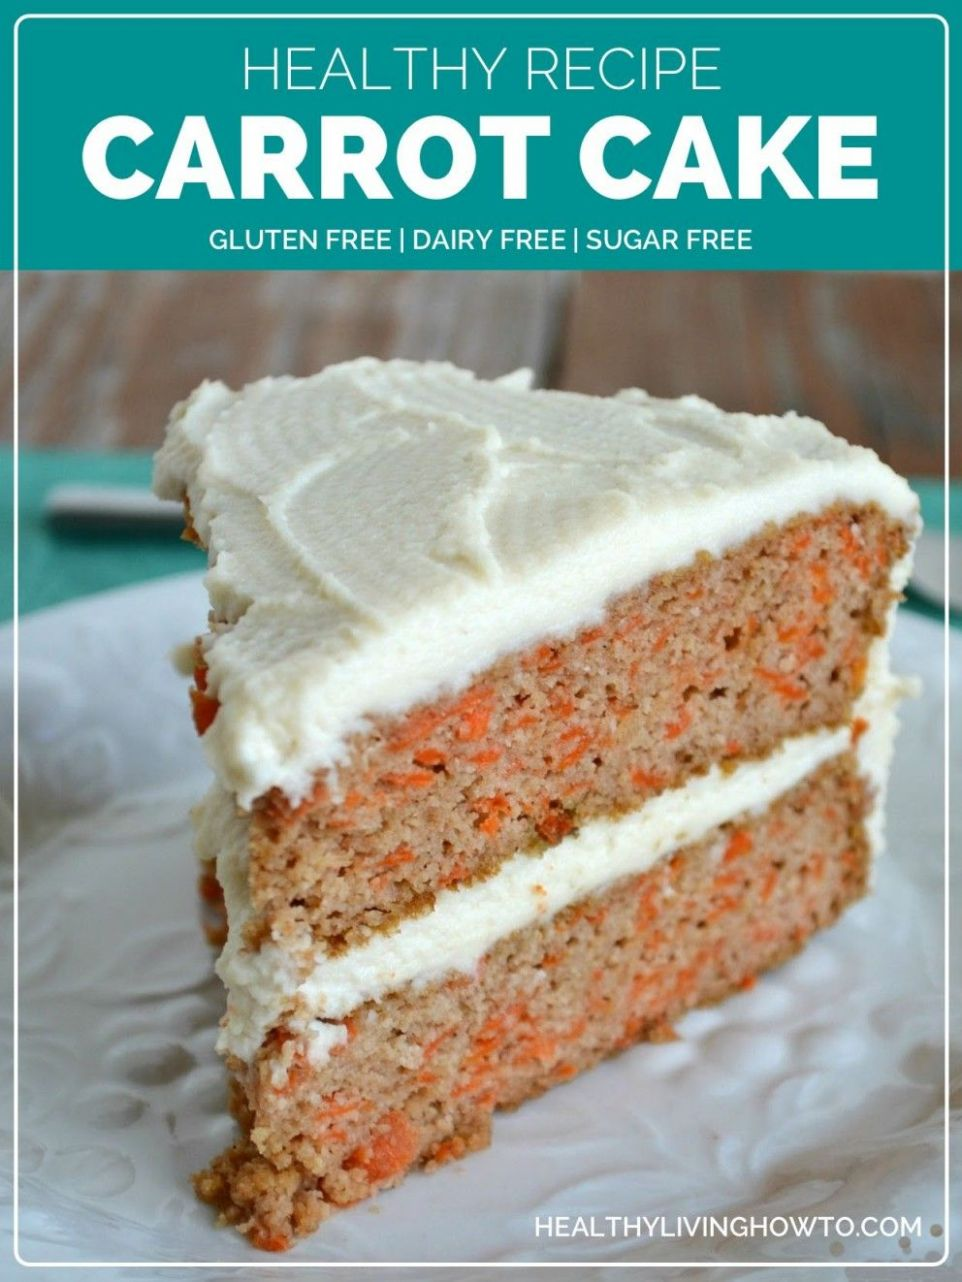 Carrot Cake - Cake Recipes Made With Xylitol